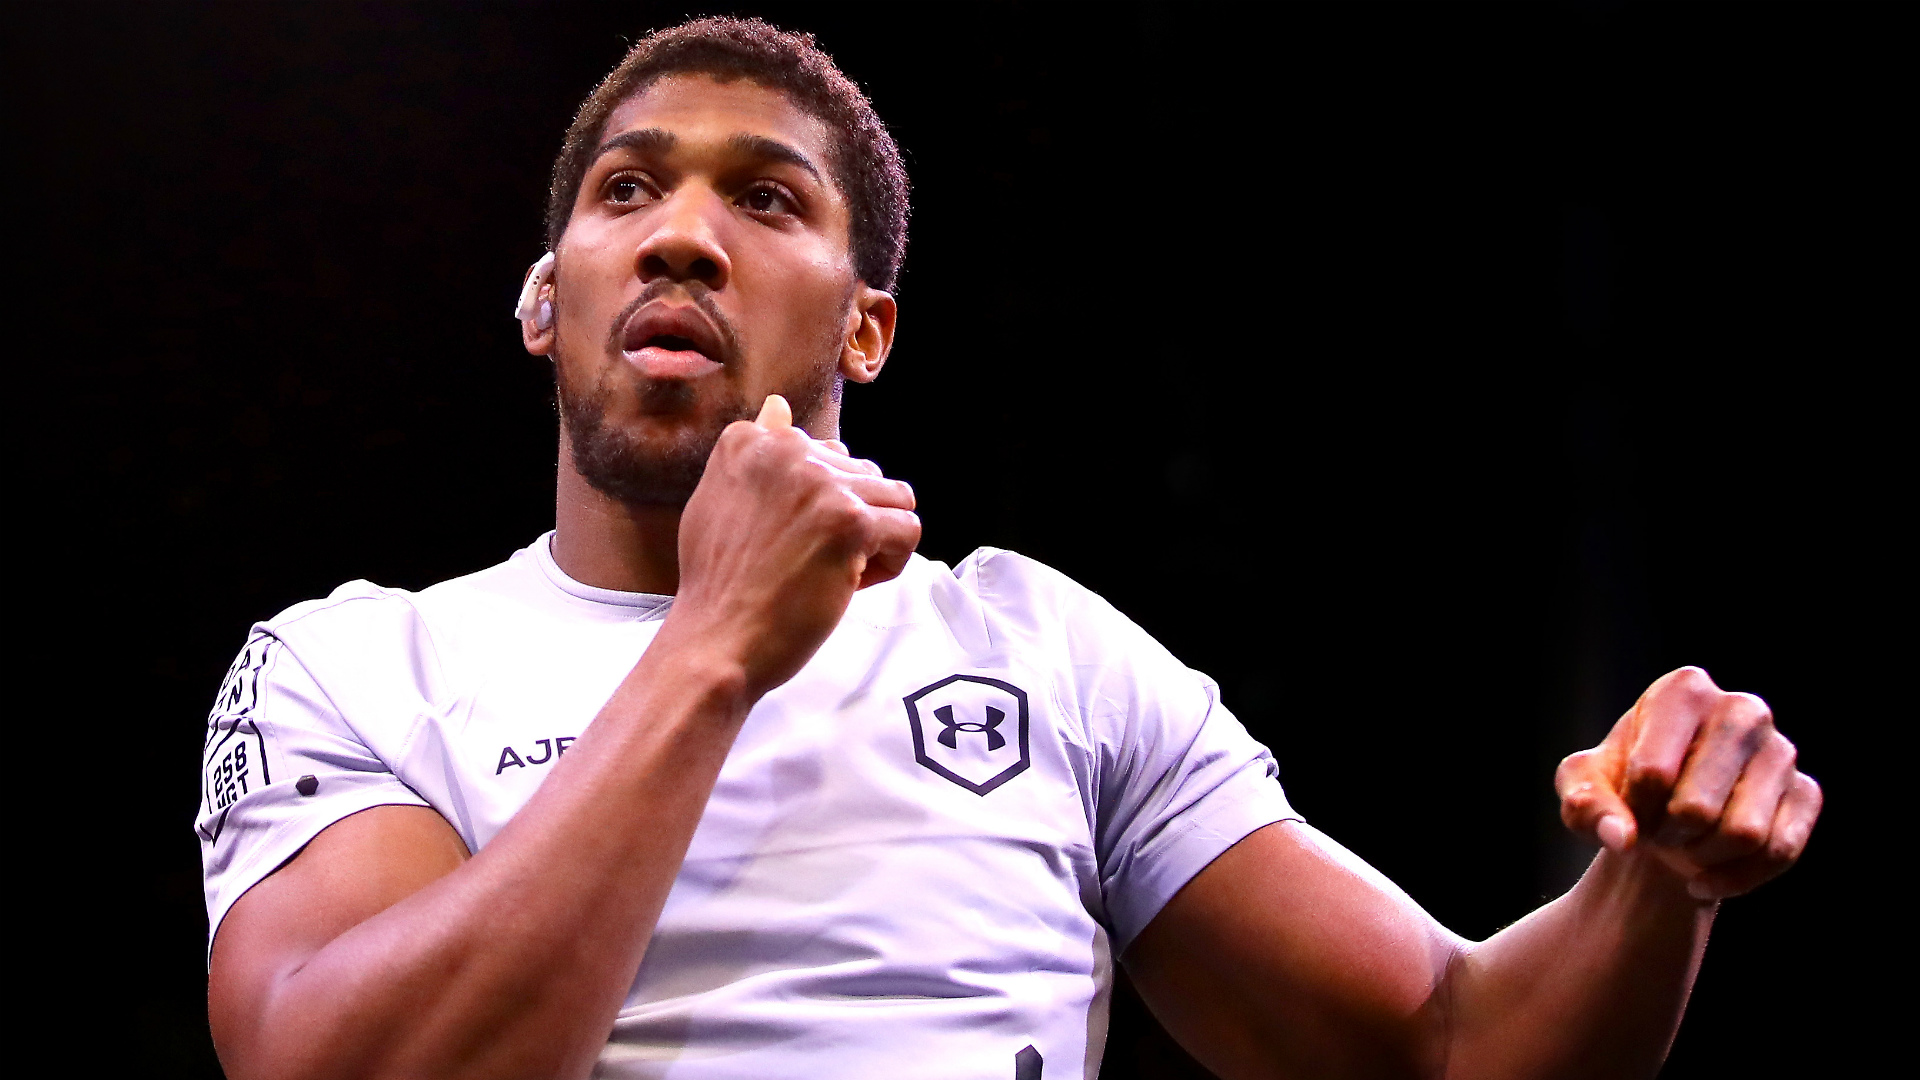 Joshua makes sparring offer to Fury ahead of Wilder rematch